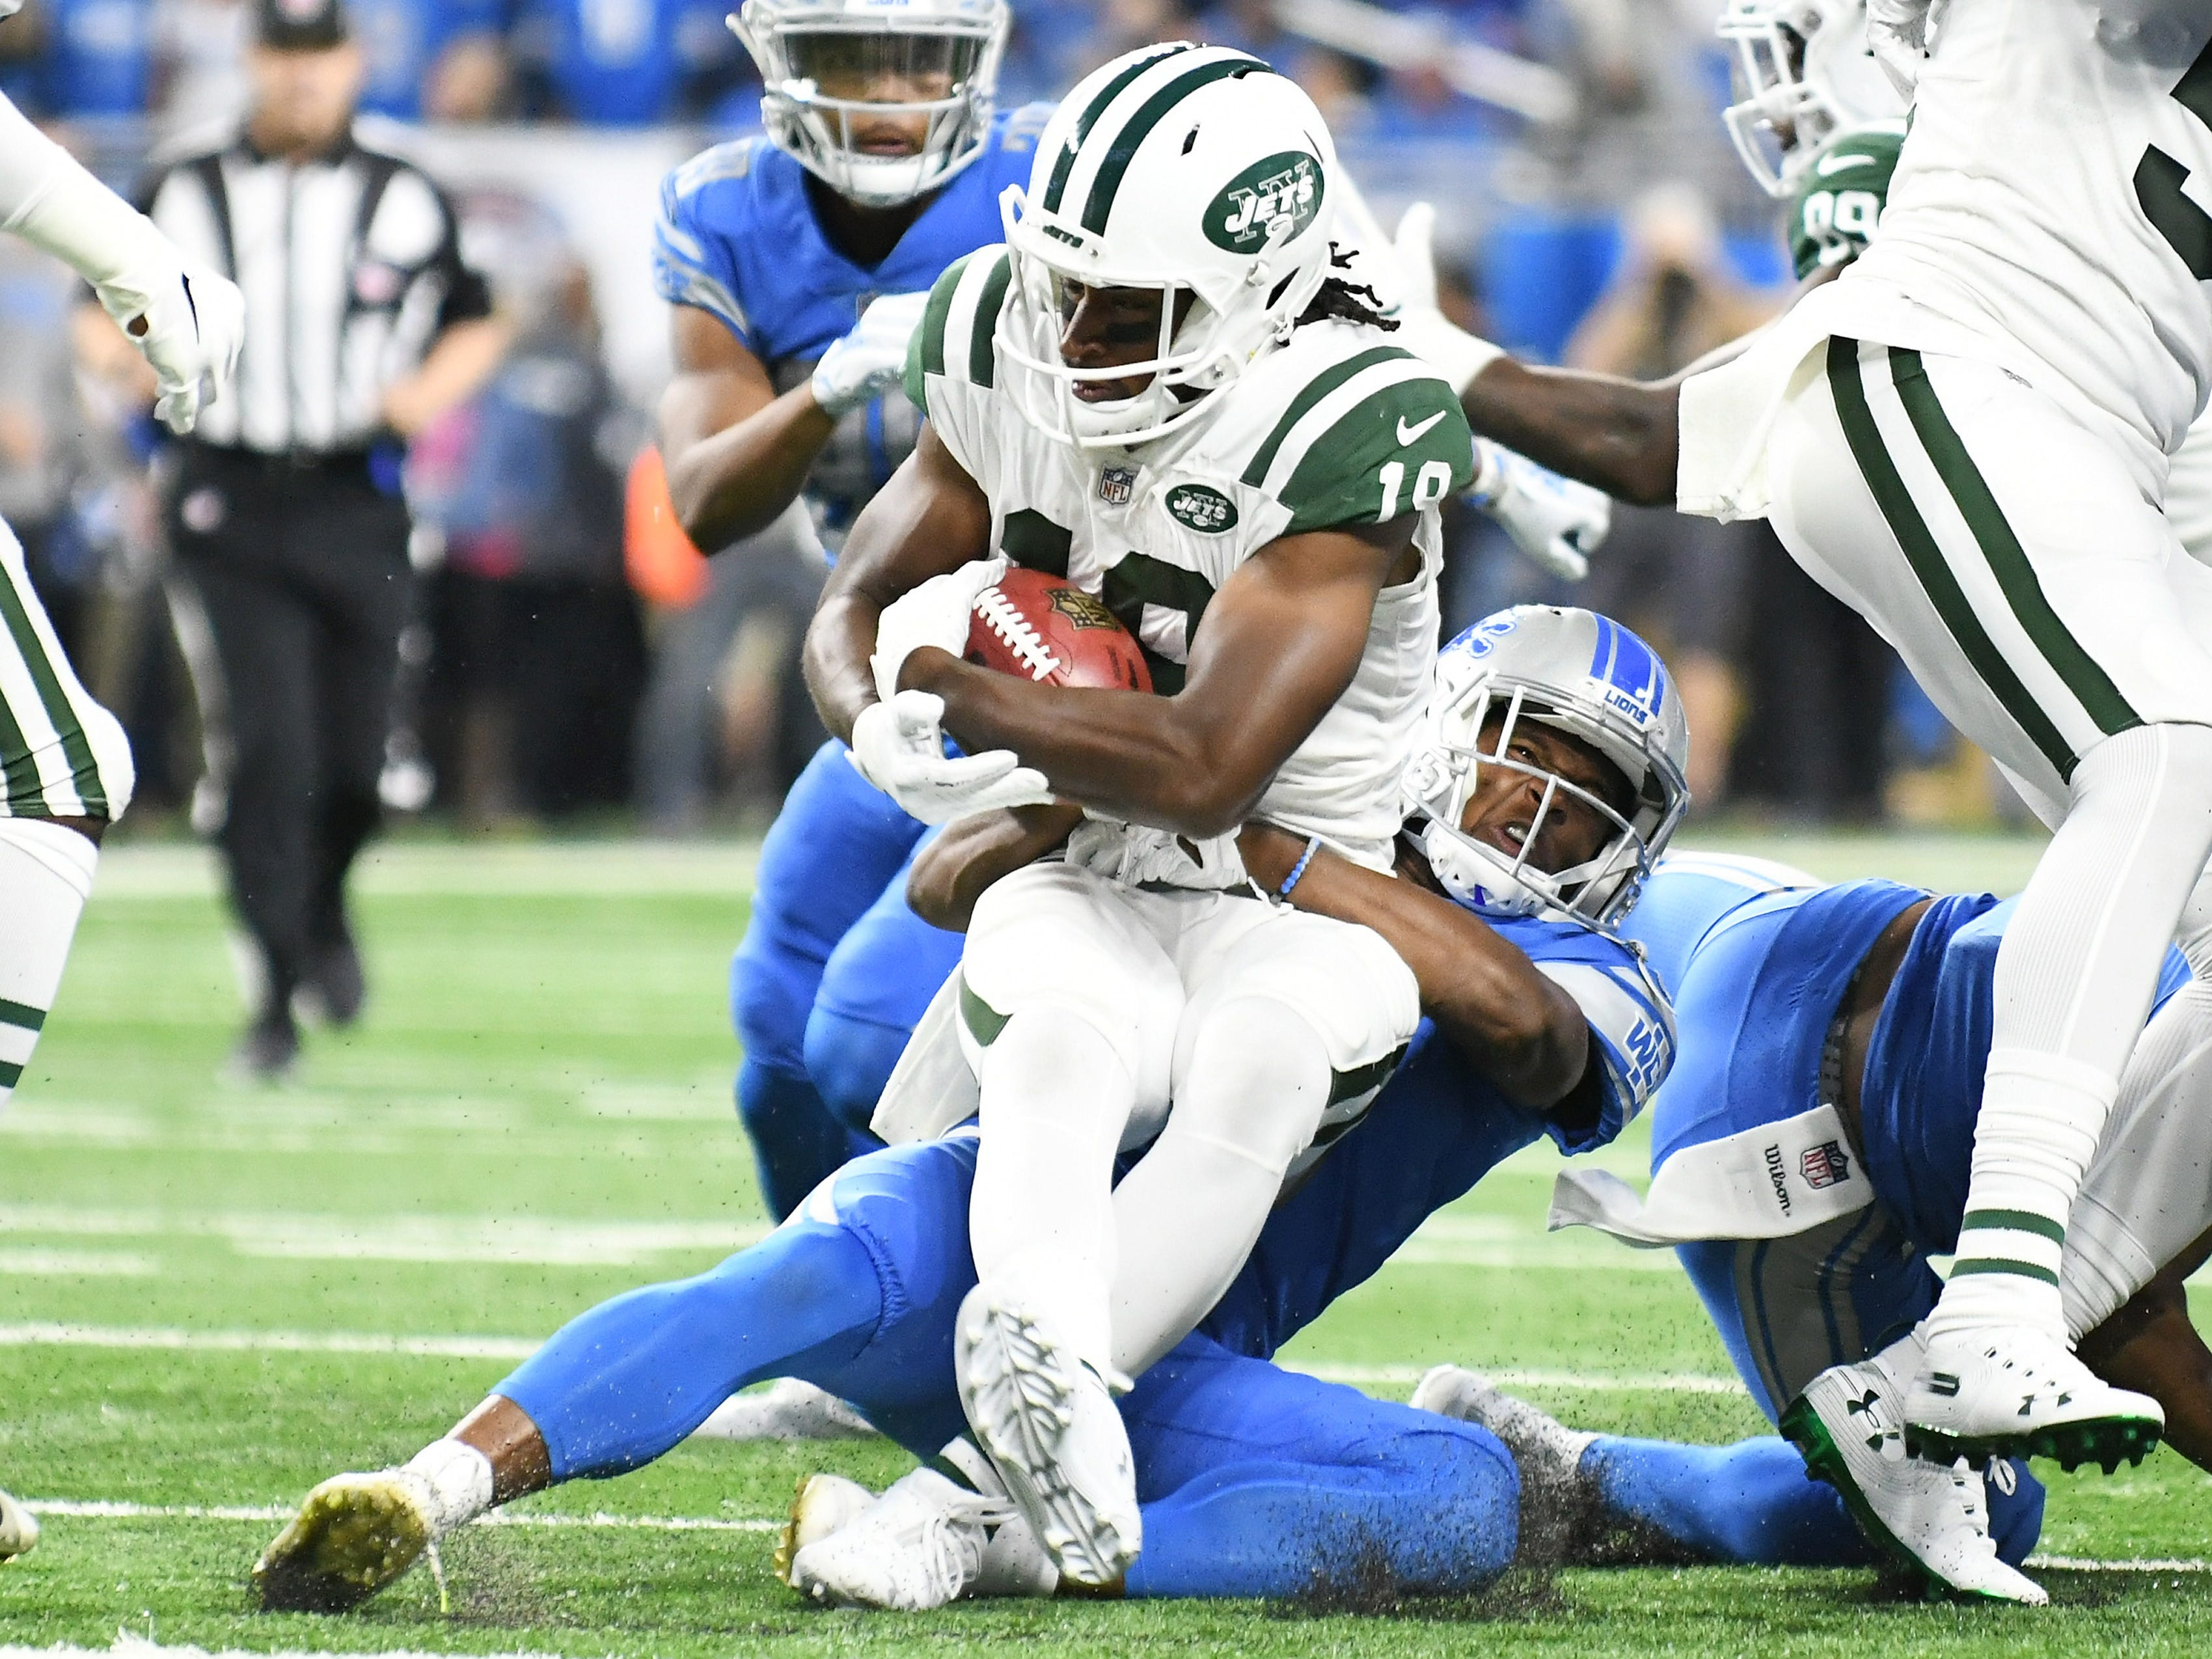 Lions safety Charles Washington ties up Jets wide receiver Andrew Roberts (19) in the first half.